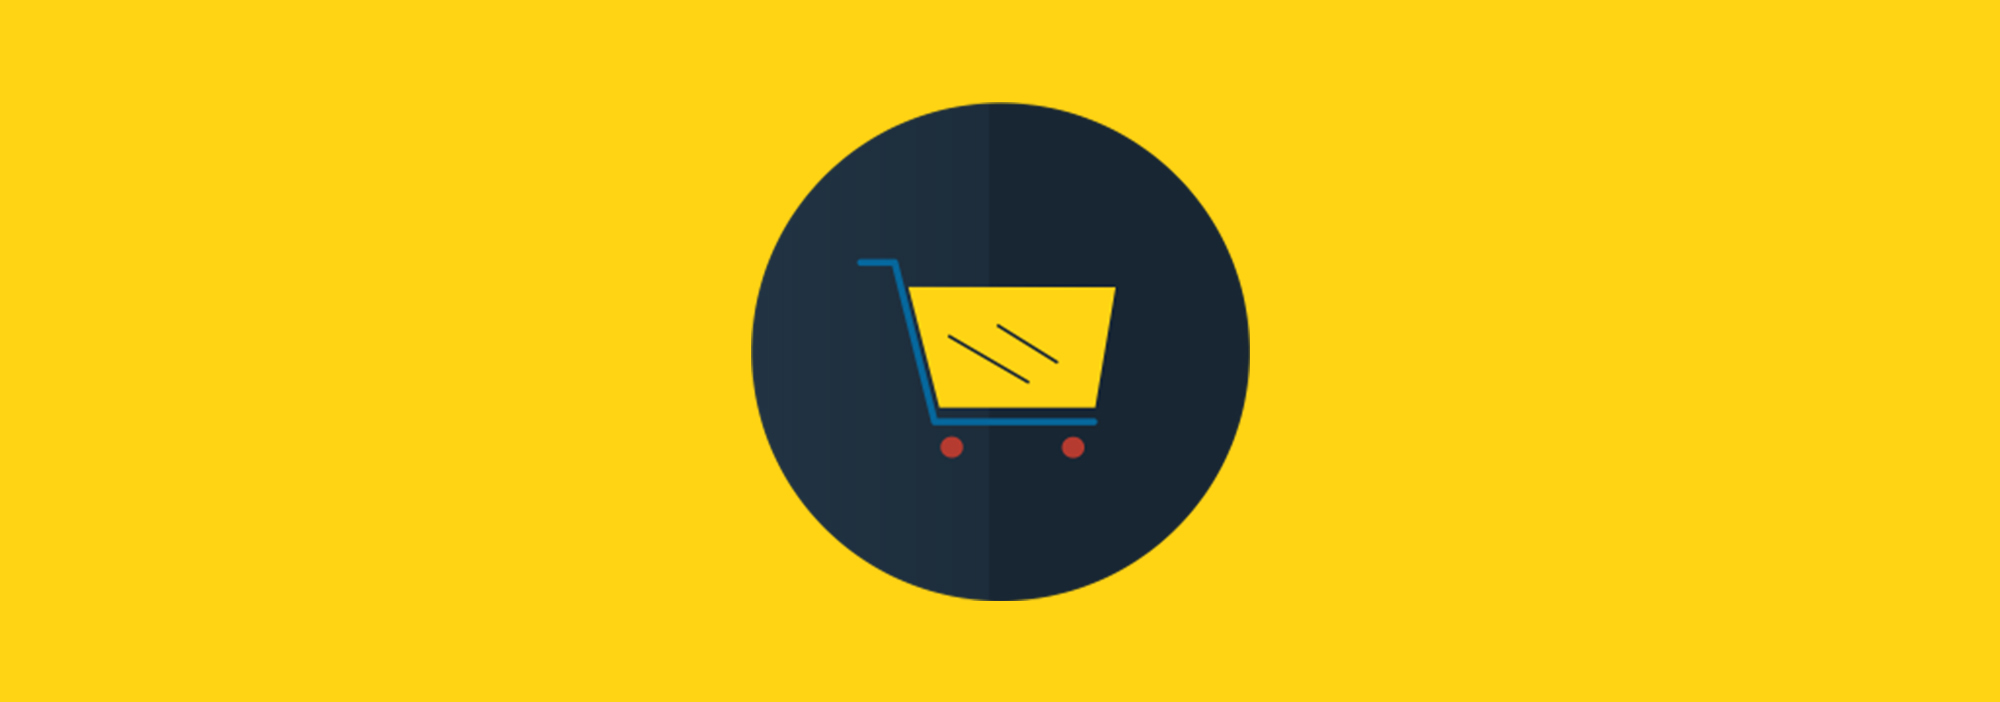 5ecommerce seo growth hacks